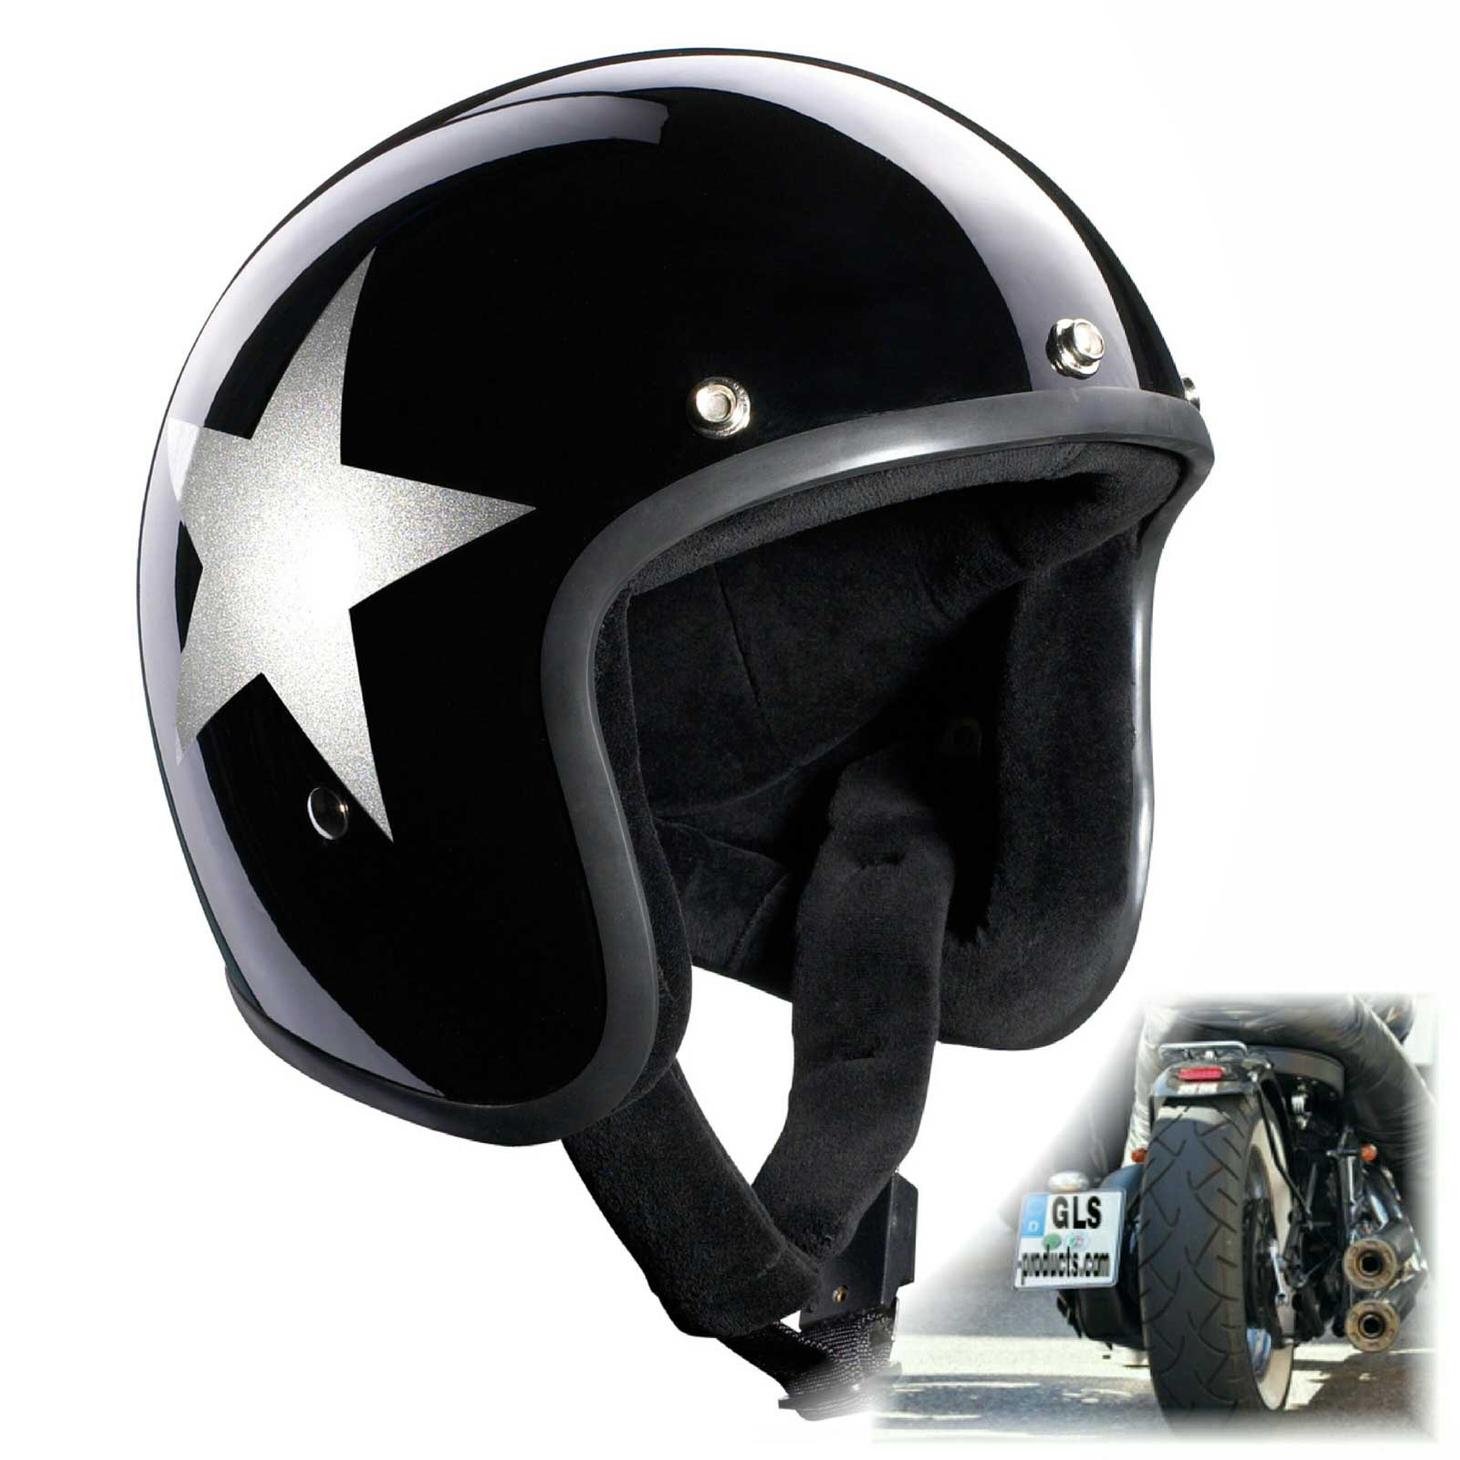 Bandit Star Black Jet Helmet - Black Motorcycle Helmet – Picture 1